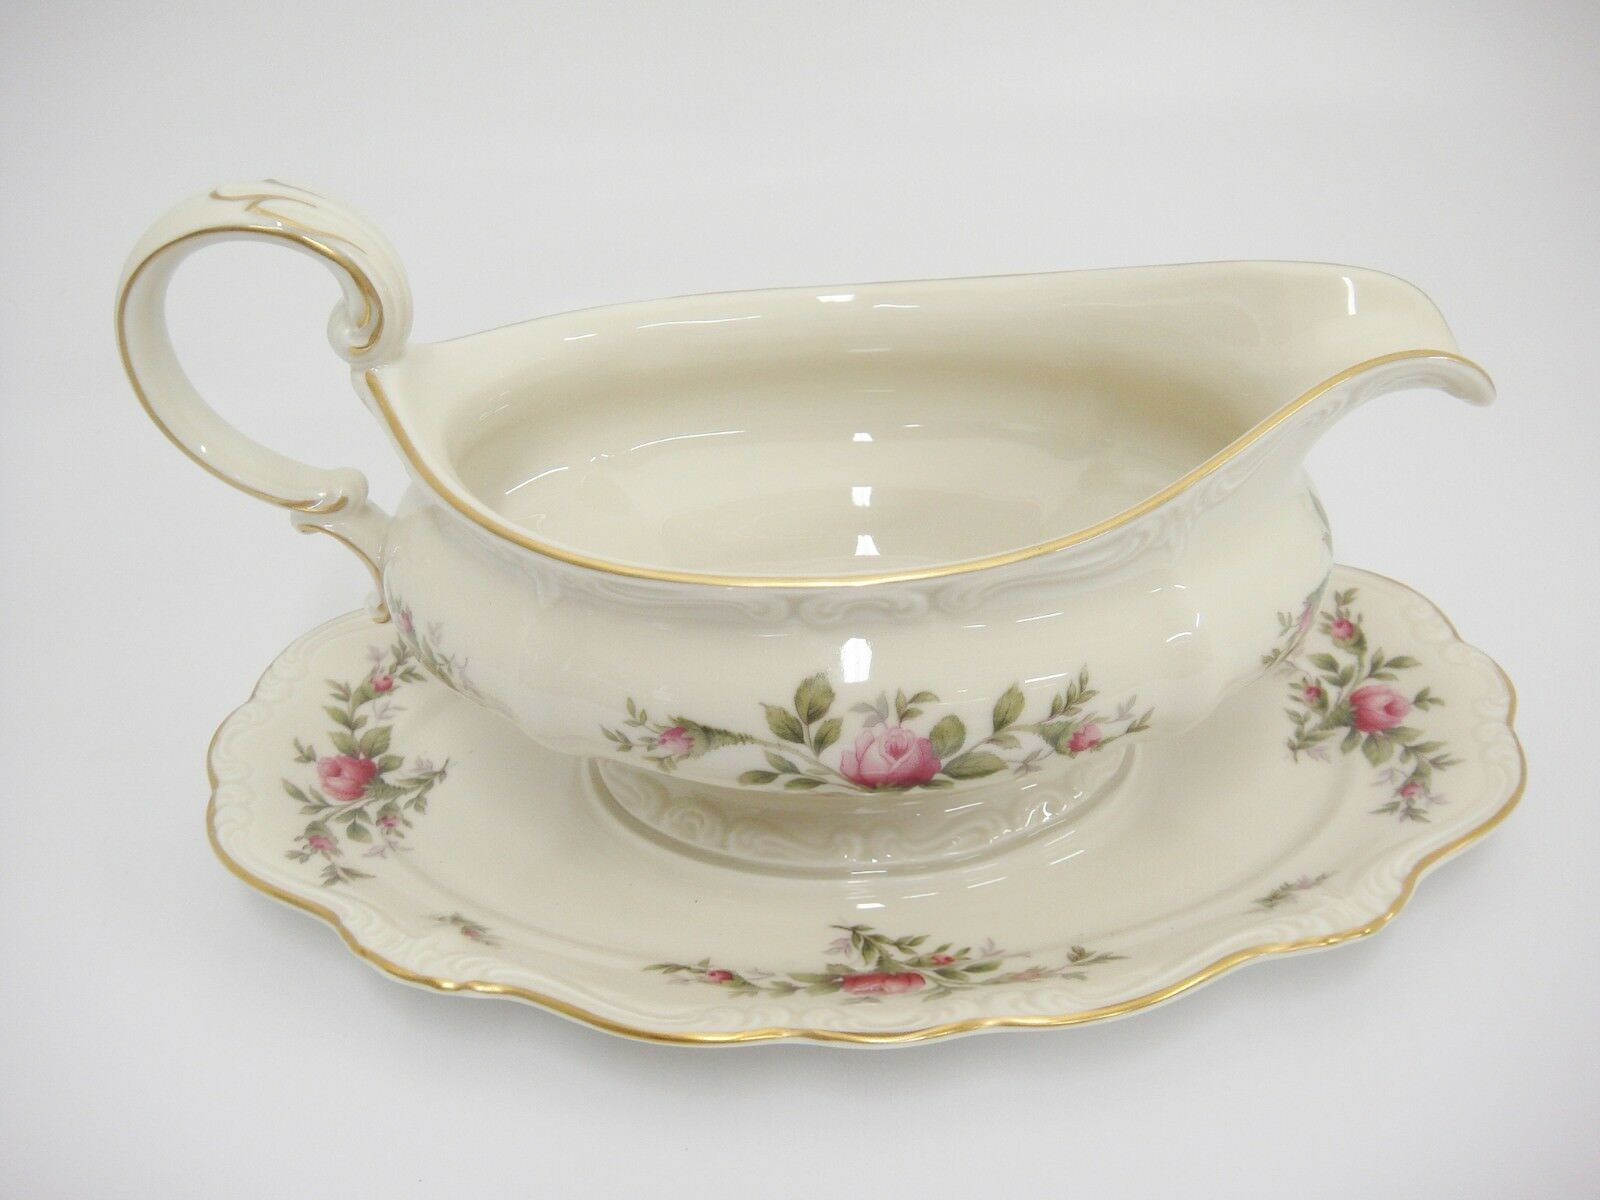 Primary image for Rosenthal Antoinette Moss Rose Gravy Boat Attached Underplate Pompadour Mint